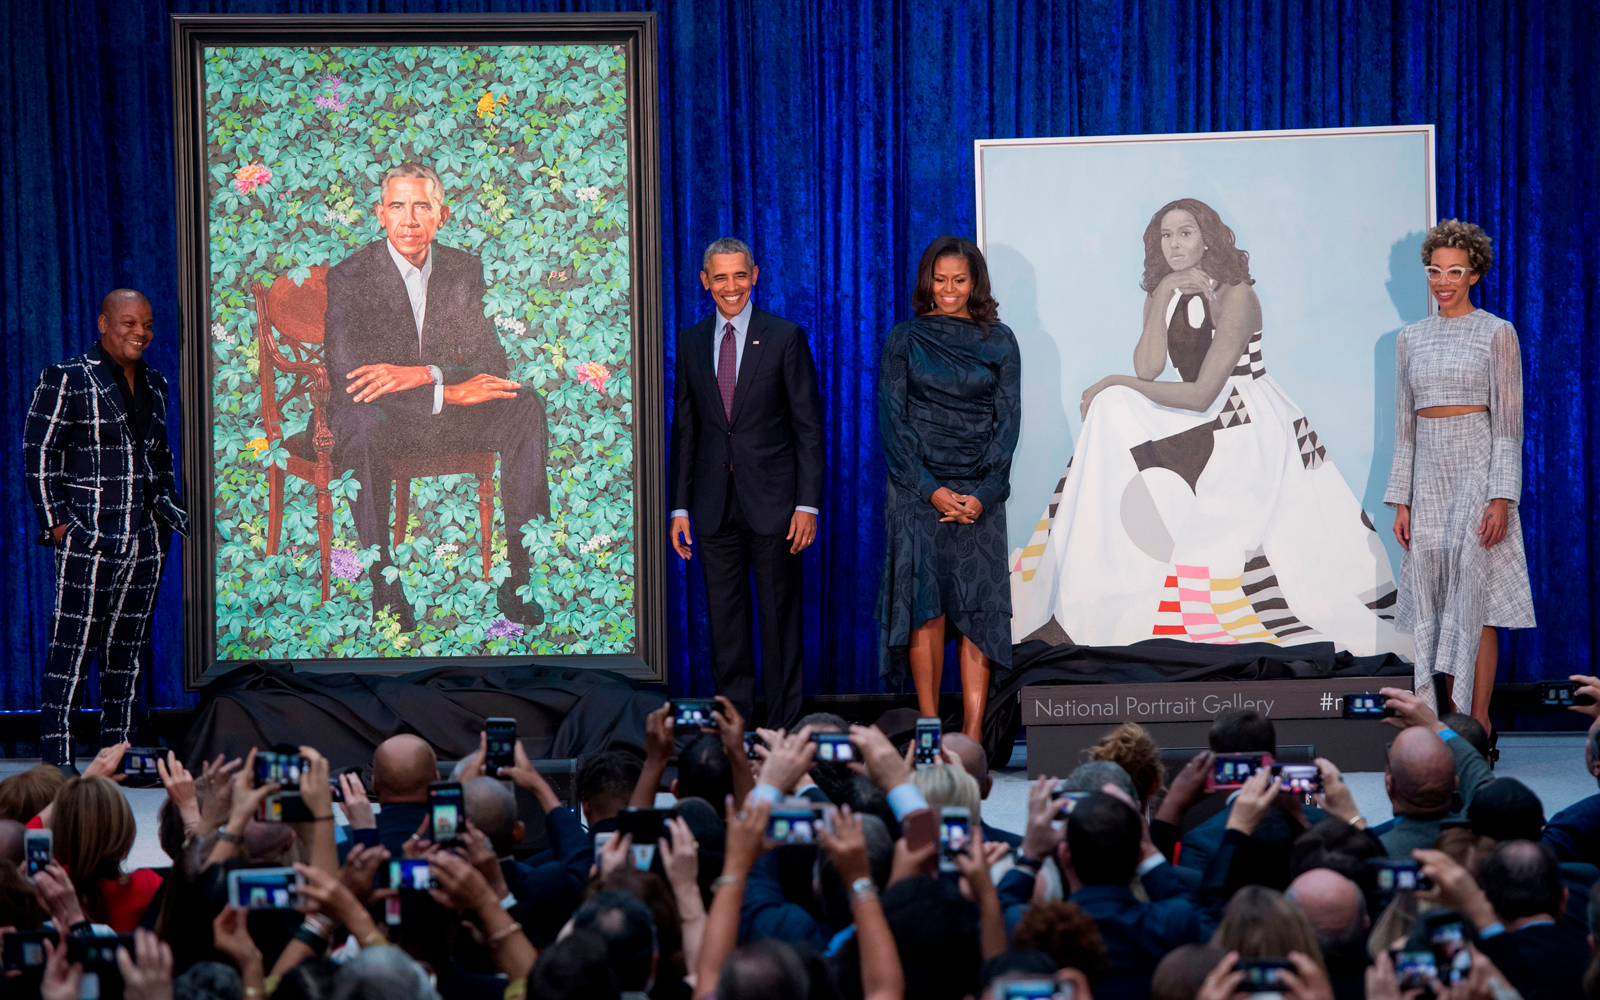 Michelle Obama posted the sweetest Instagram after visiting Barack's presidential portrait